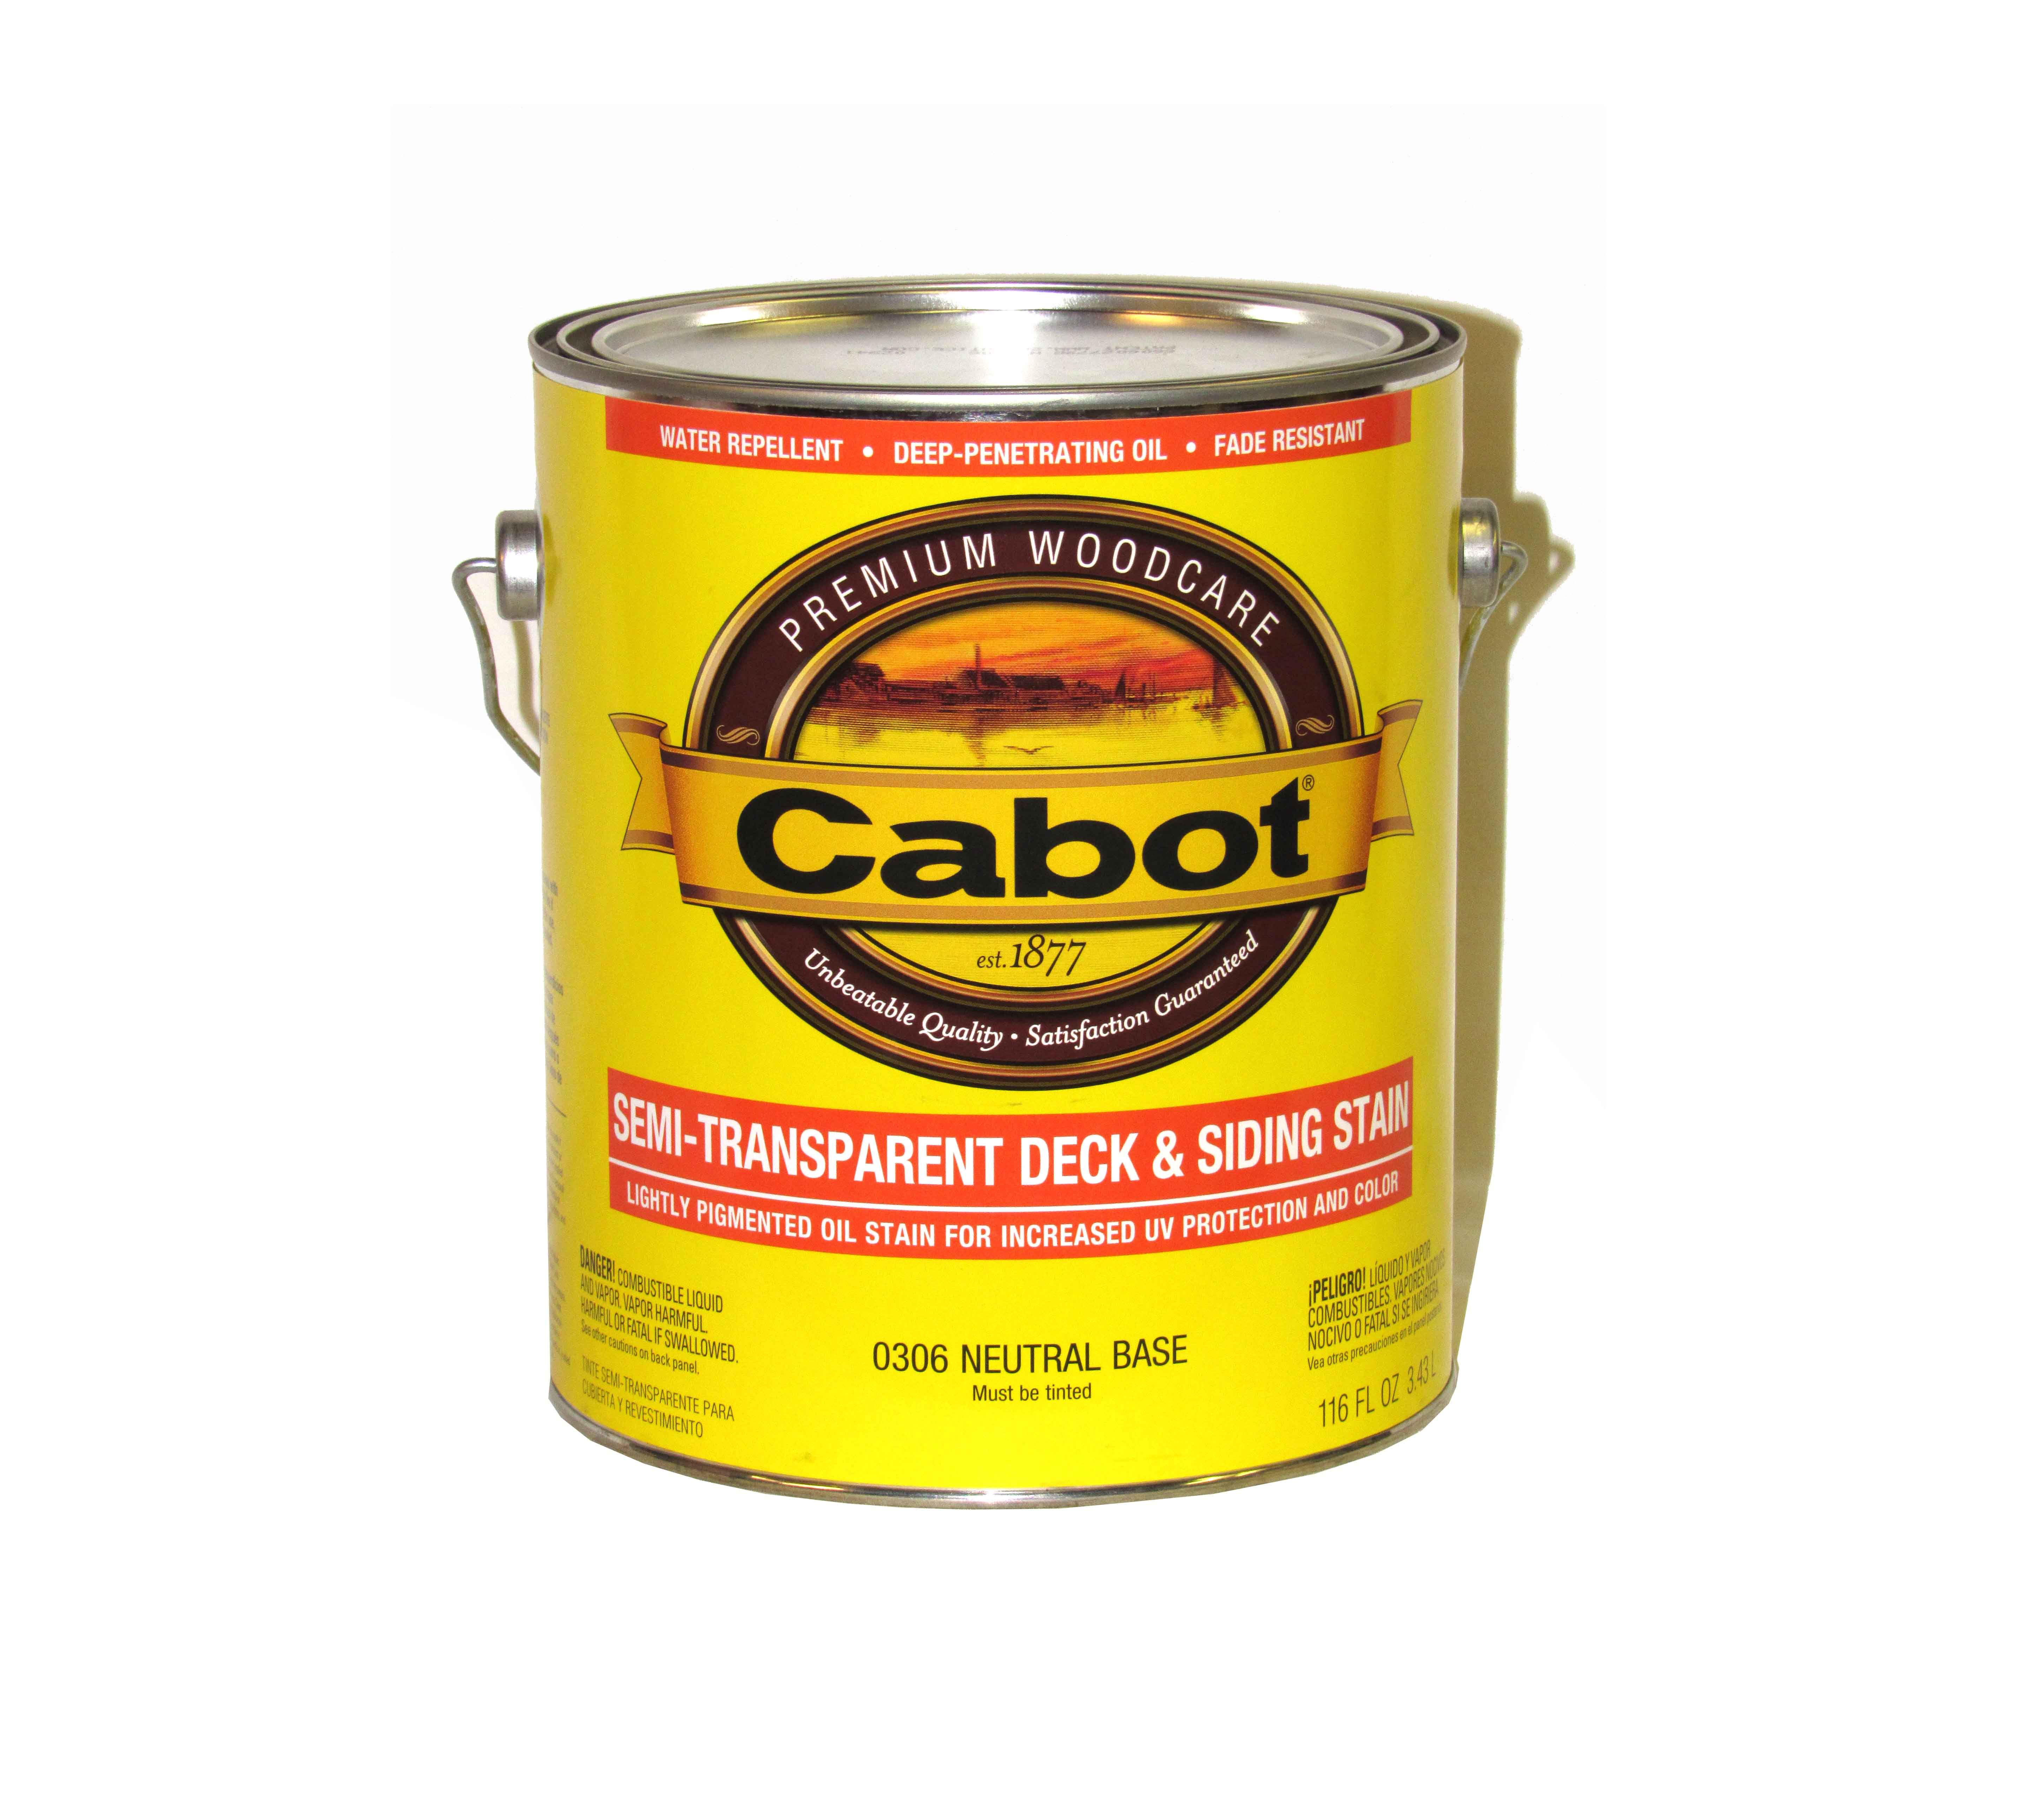 Cabot stain pictures to pin on pinterest pinsdaddy for Cabot